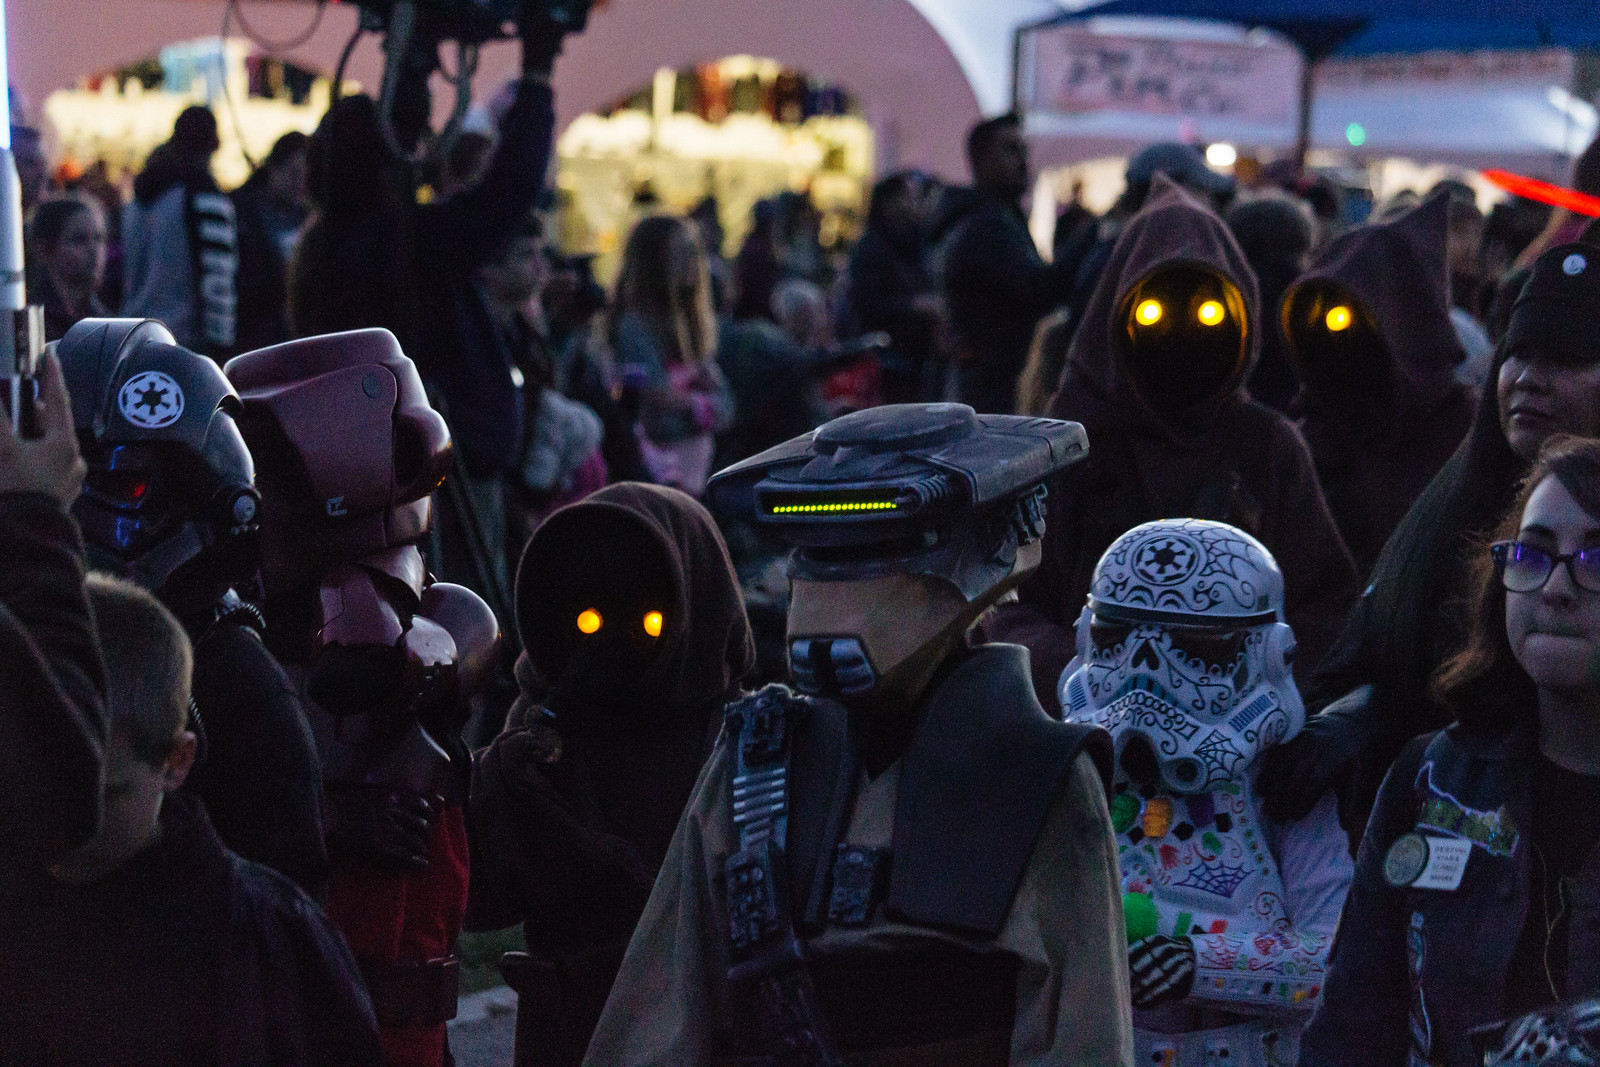 People dressed in Star Wars character costumes at the Albuquerque International Balloon Fiesta